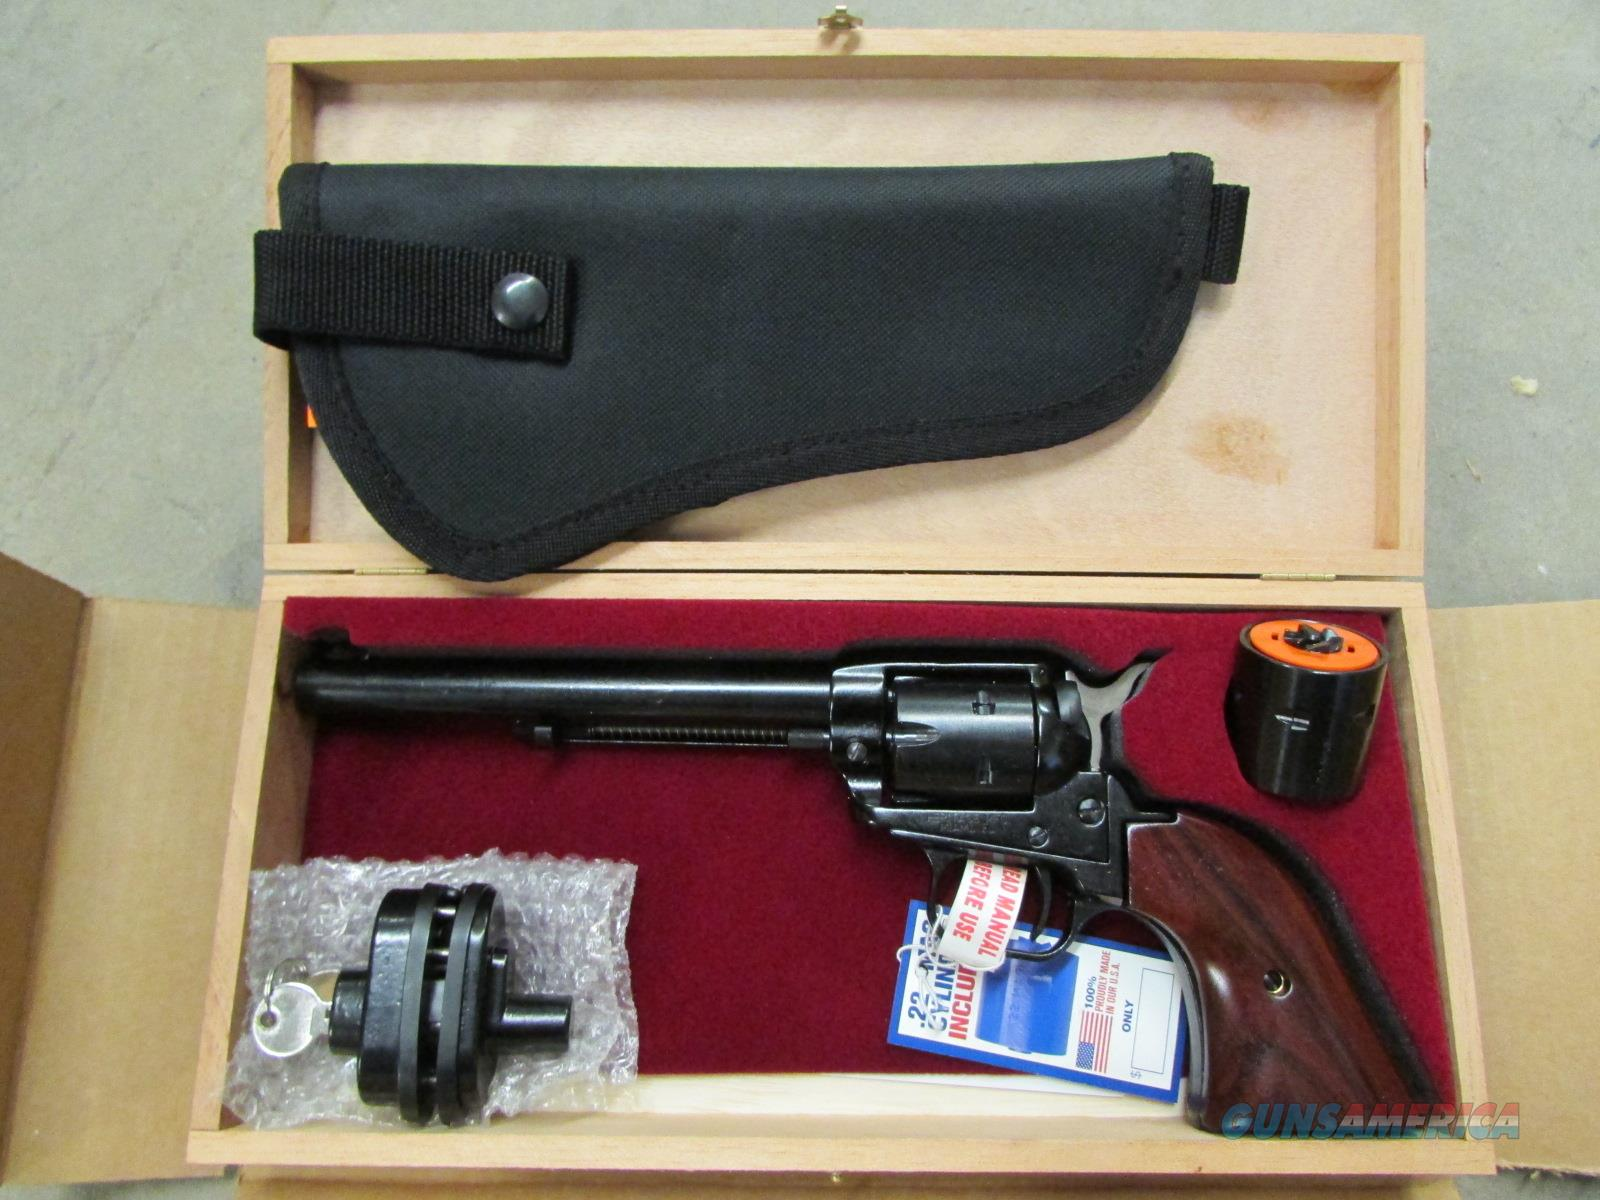 HERITAGE ROUGH RIDER COMBO .22 LR & .22 MAG w/CASE  Guns > Pistols > Heritage